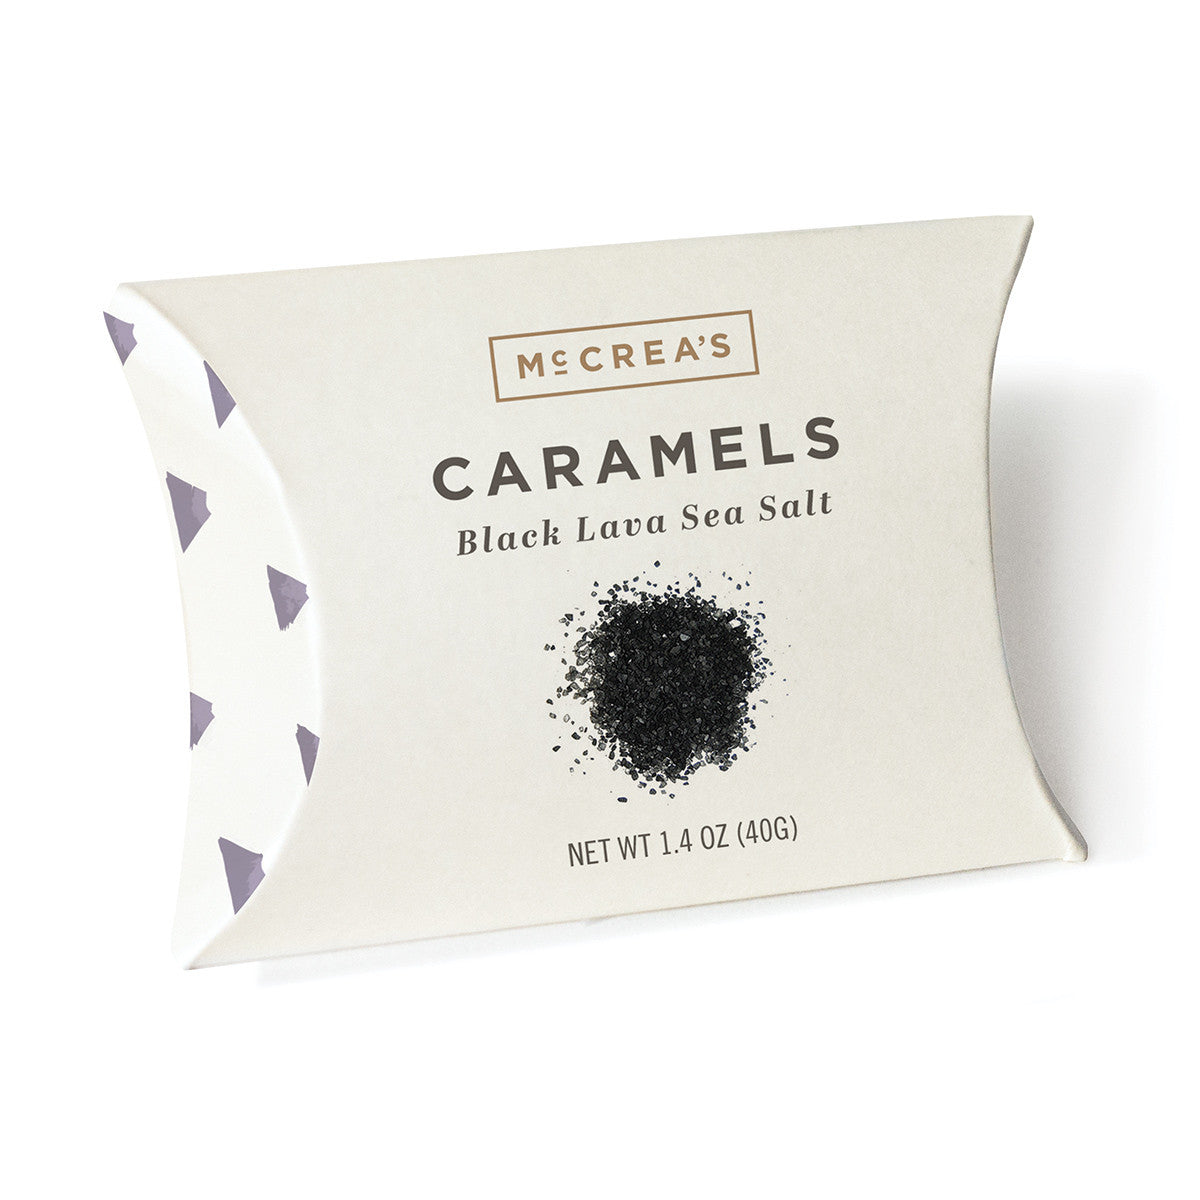 Black lava sea salt caramels  1-4-oz-pillow-box